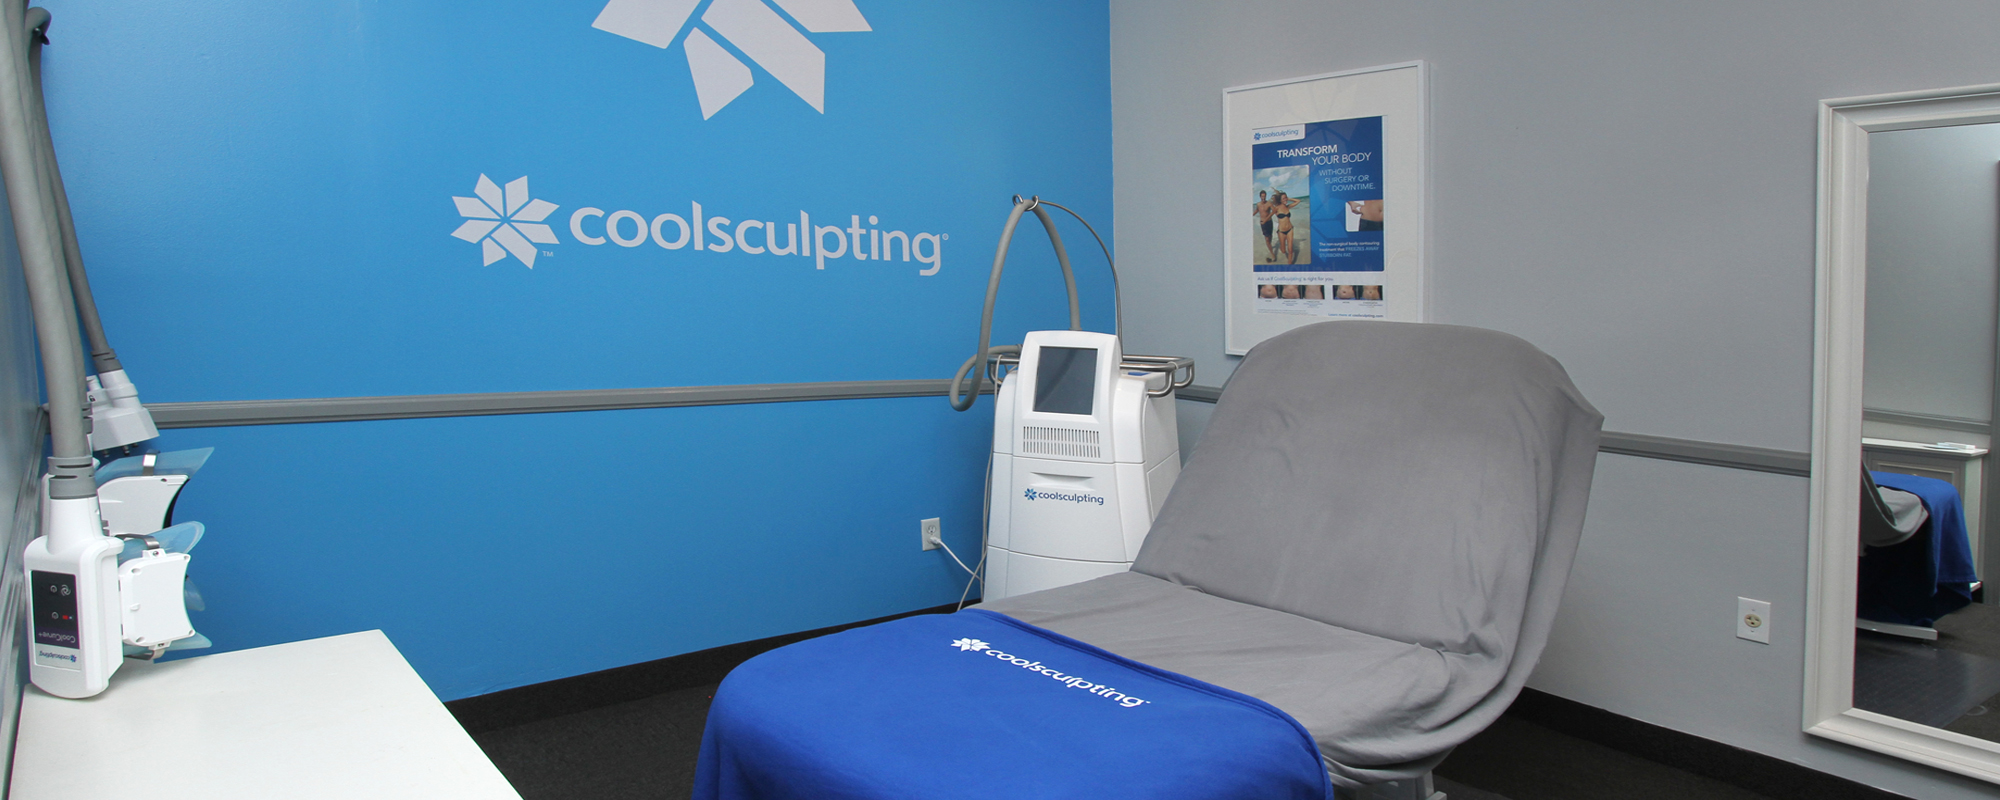 Infinity Med Spa is the #1 provider of Coolsculpting in Santa Clarita